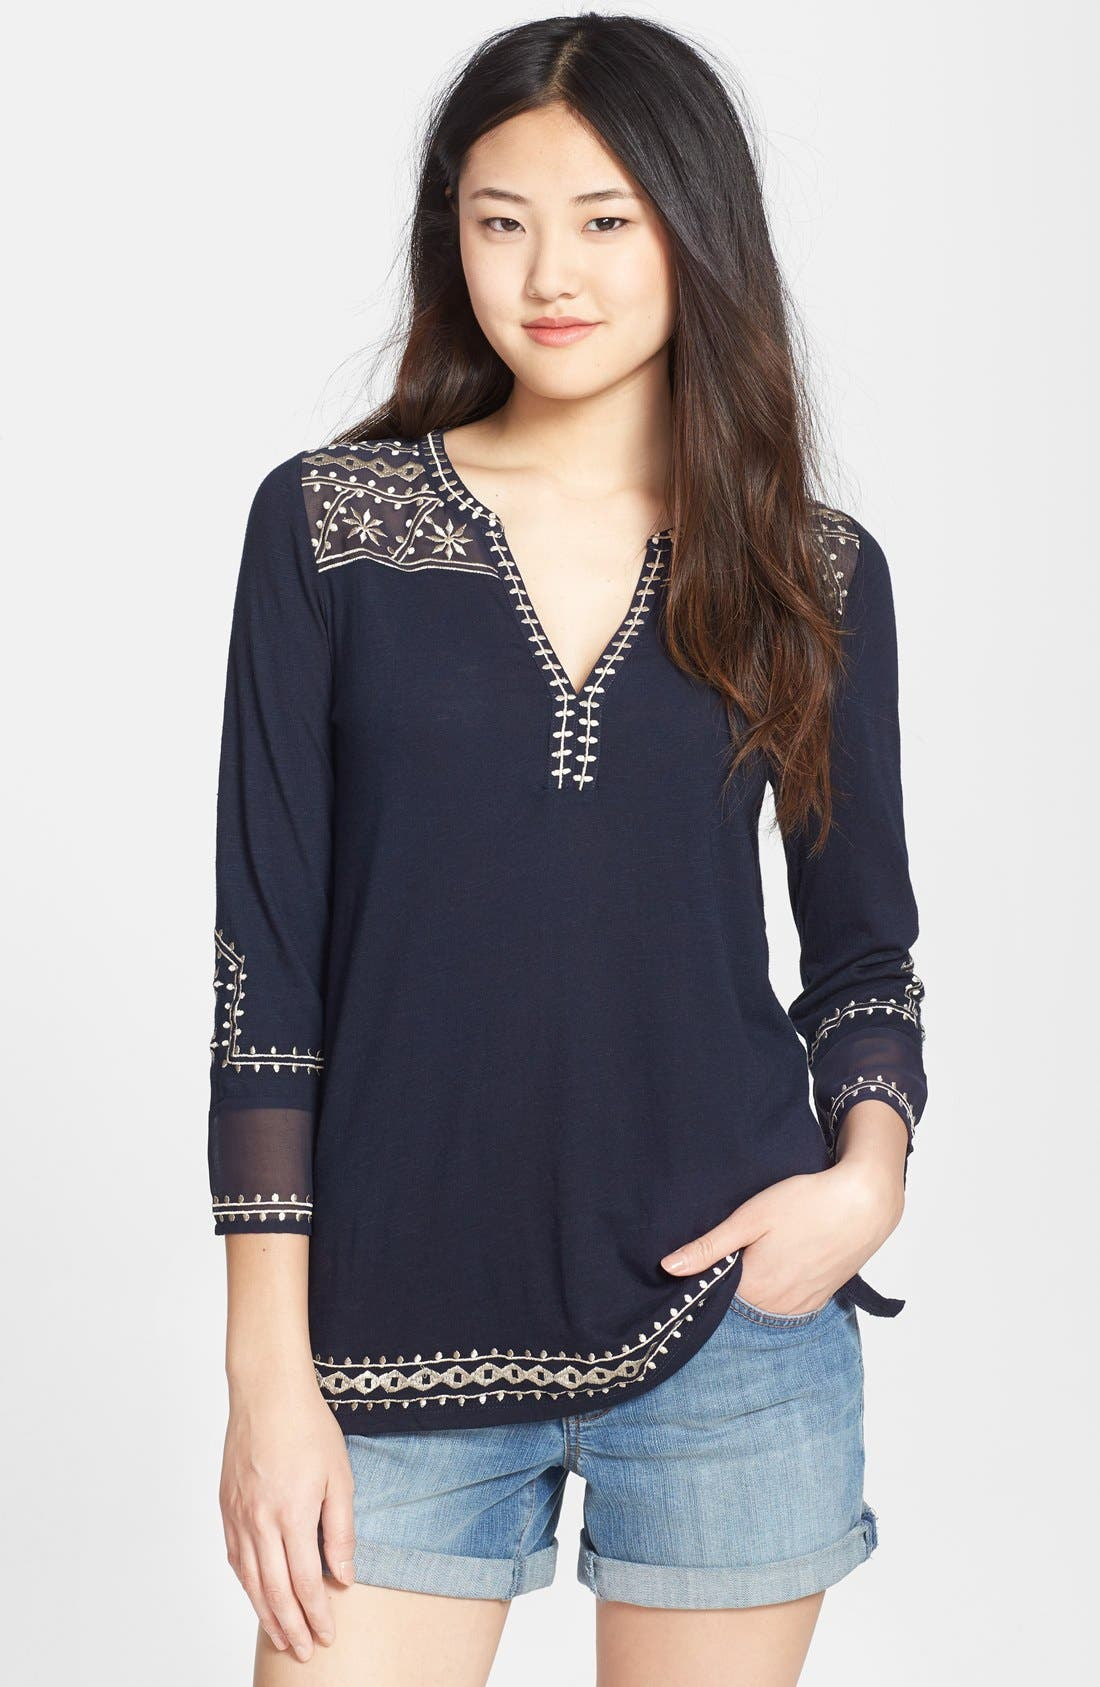 Alternate Image 1 Selected - Lucky Brand 'Kiana' Embroidered Tunic Top